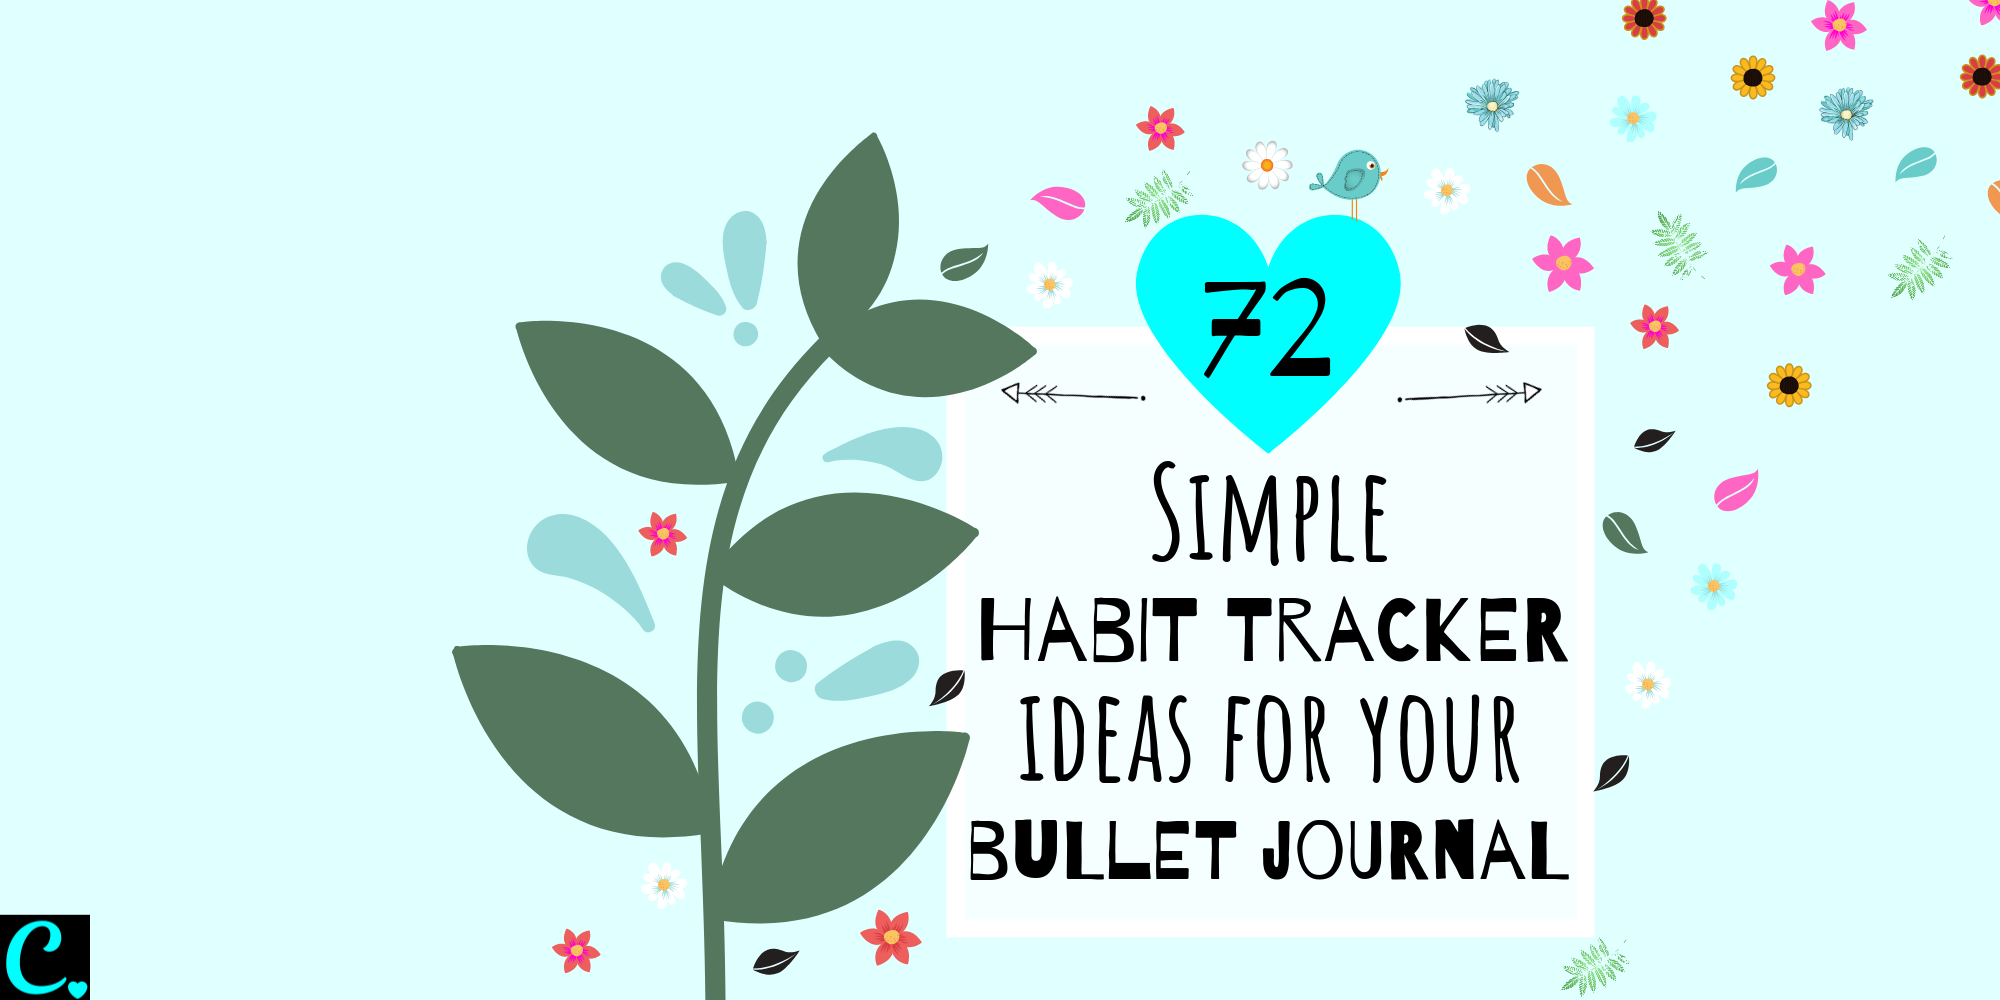 72 Habit tracker Ideas For Your Bullet Journal | Get better habits with these ideas you can track in your bujo, including financial trackers, relationship trackers, health & fitness trackers, self care trackers & more #habittracker #bulletjournal #bulletjournalhabittracker #habittrackerlayout